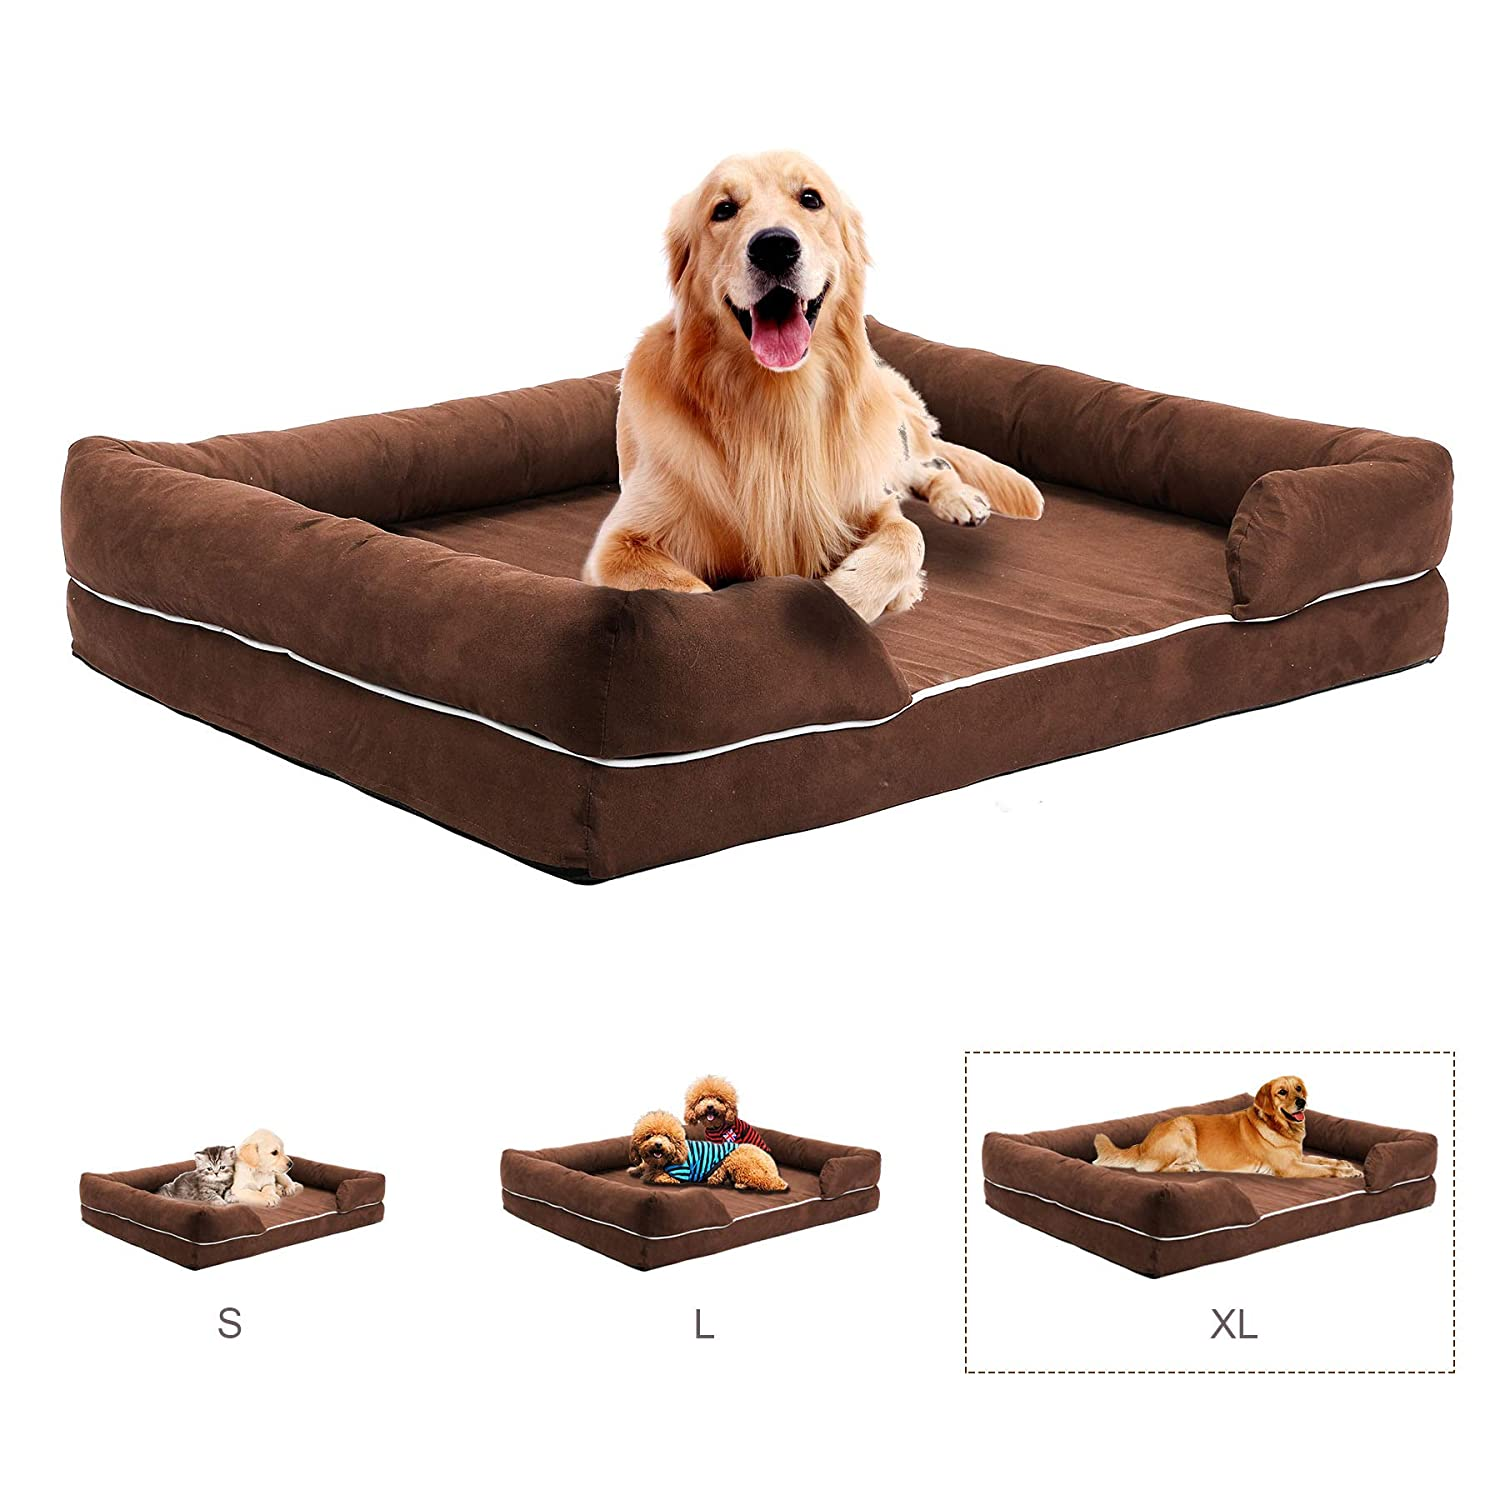 Strange Co Z Luxurious Pet Sofa Bed Comfortable Couch Bed Premium Memory Foam Mattress For Pets Dog Cat Or Puppy W Removable Washable Cover Extra Large Xl Home Interior And Landscaping Palasignezvosmurscom